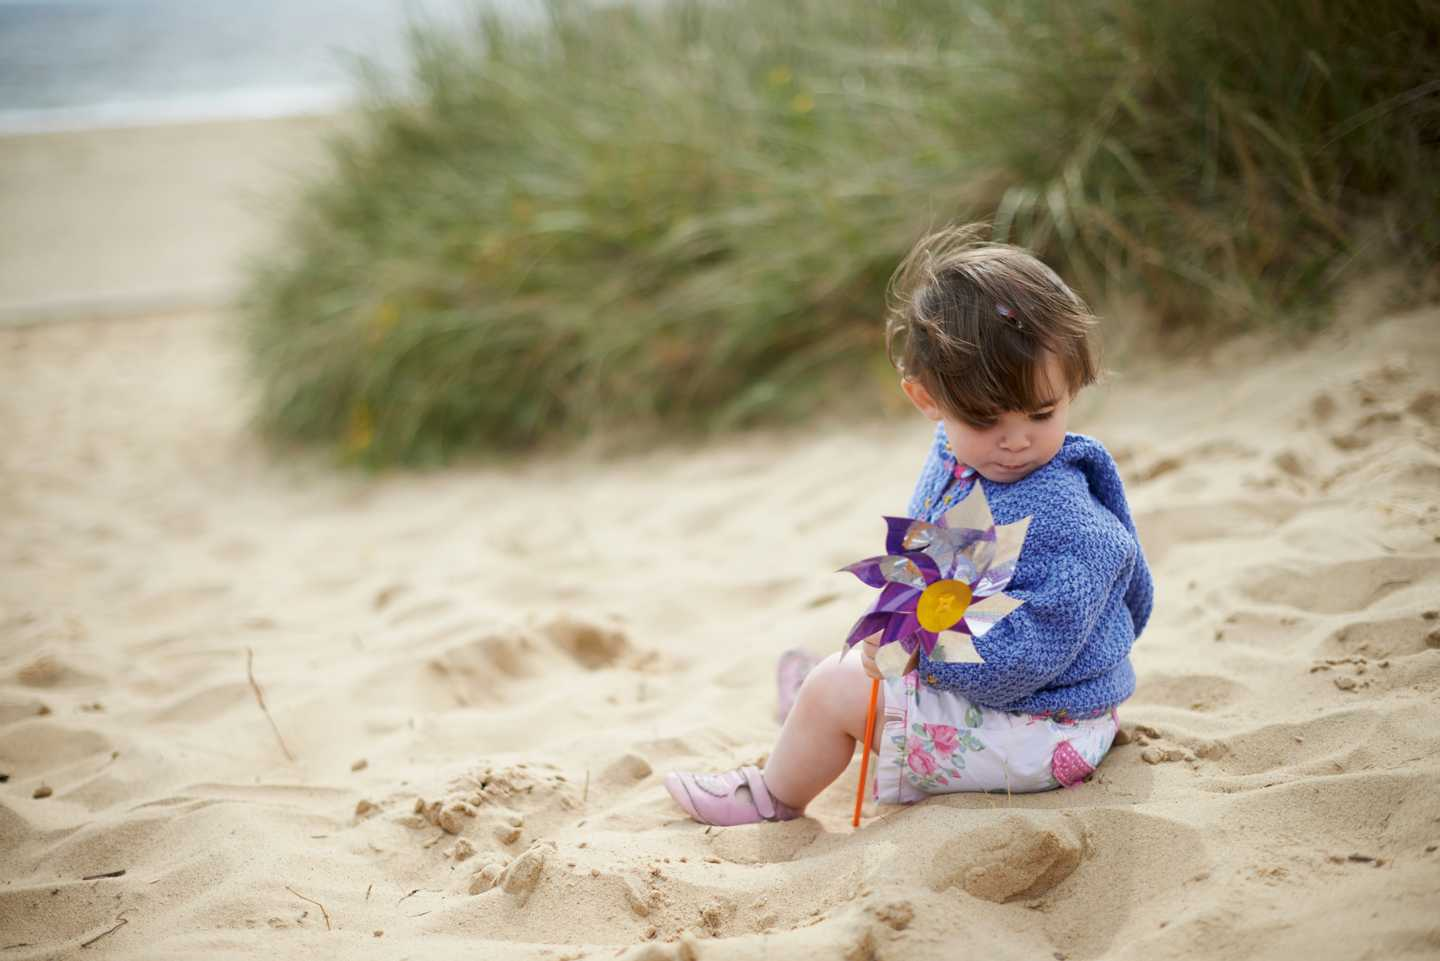 A young girl sitting in the middle of sand dunes as she looks around